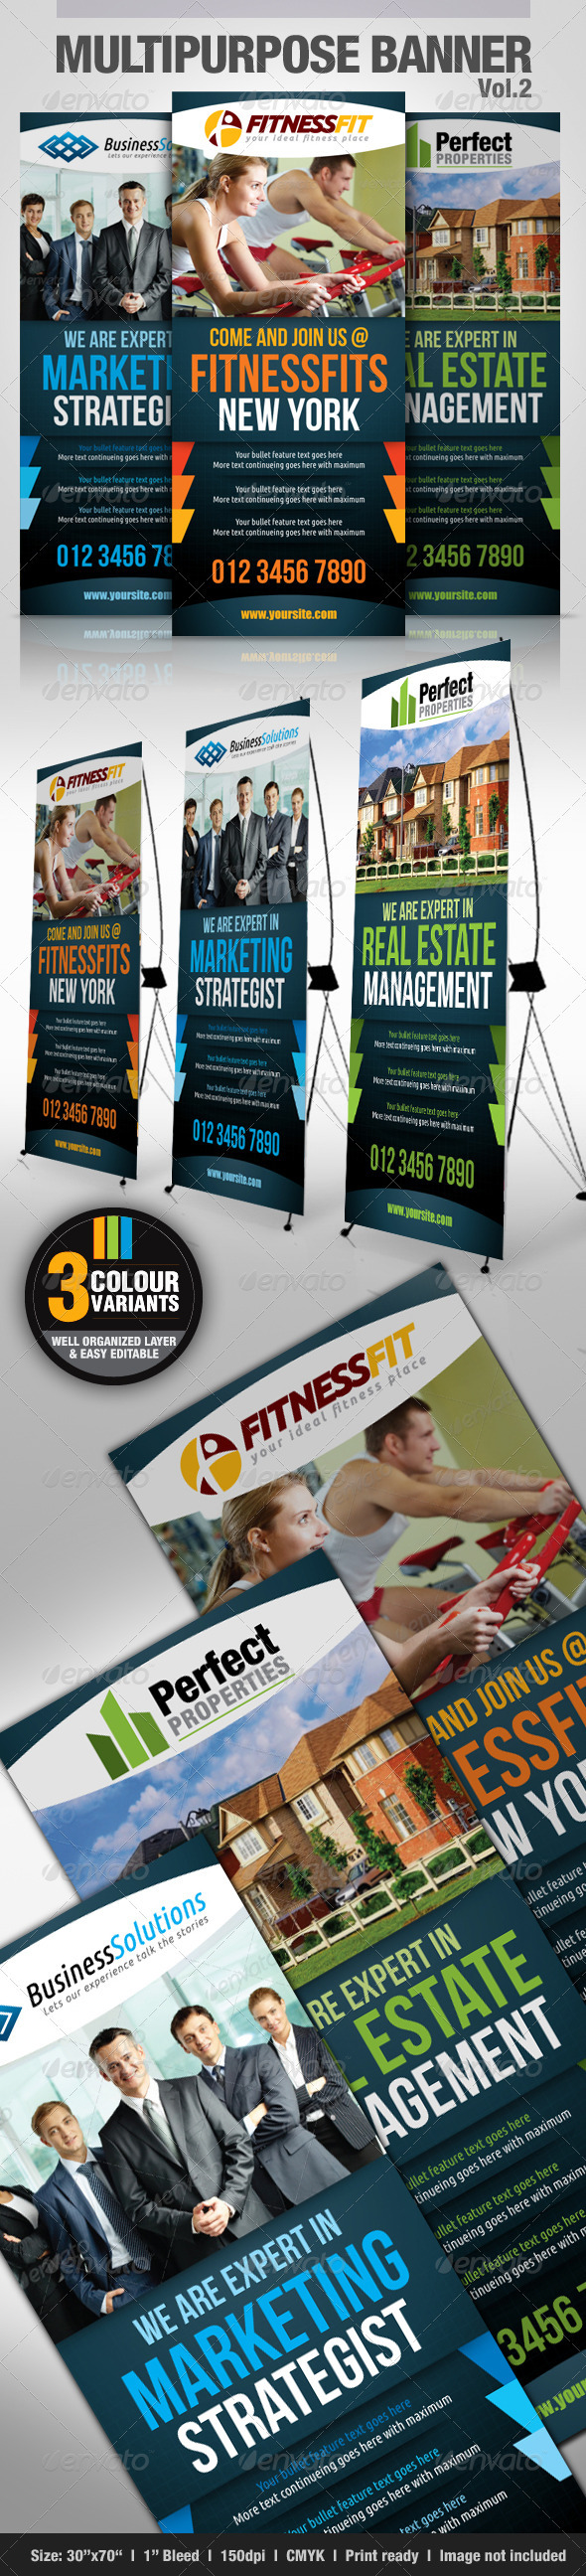 GraphicRiver Multipurpose Banner Vol.2 2610914